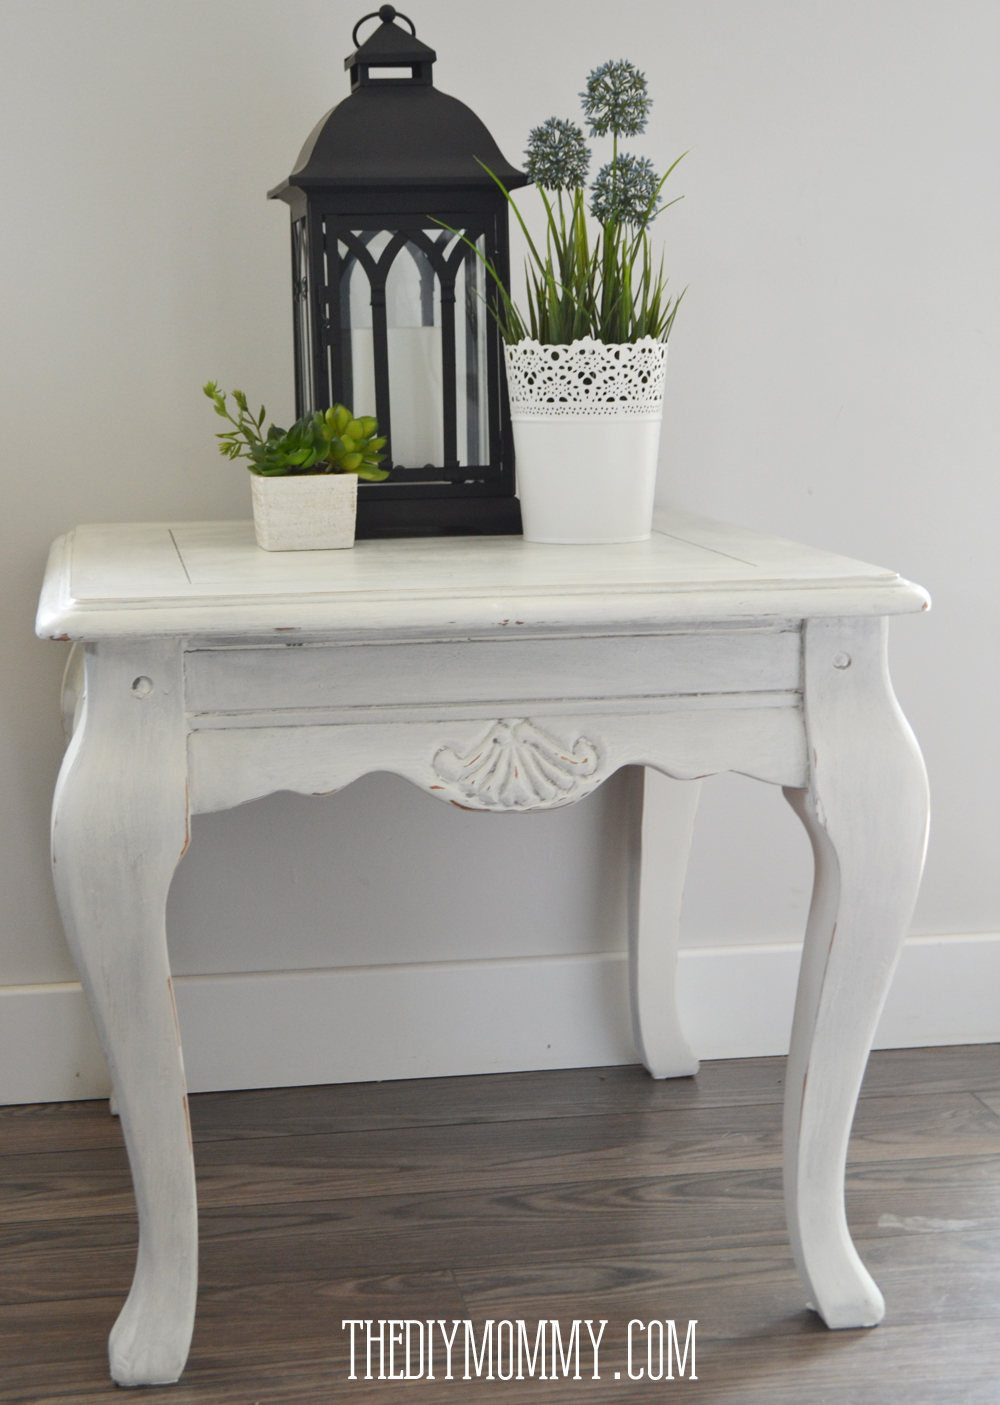 make diy dark coloured wax upcycled side table the mommy shabby chic end with chalk paint and metallic painted tables sauder furniture cabinets small tall dragon plain wooden